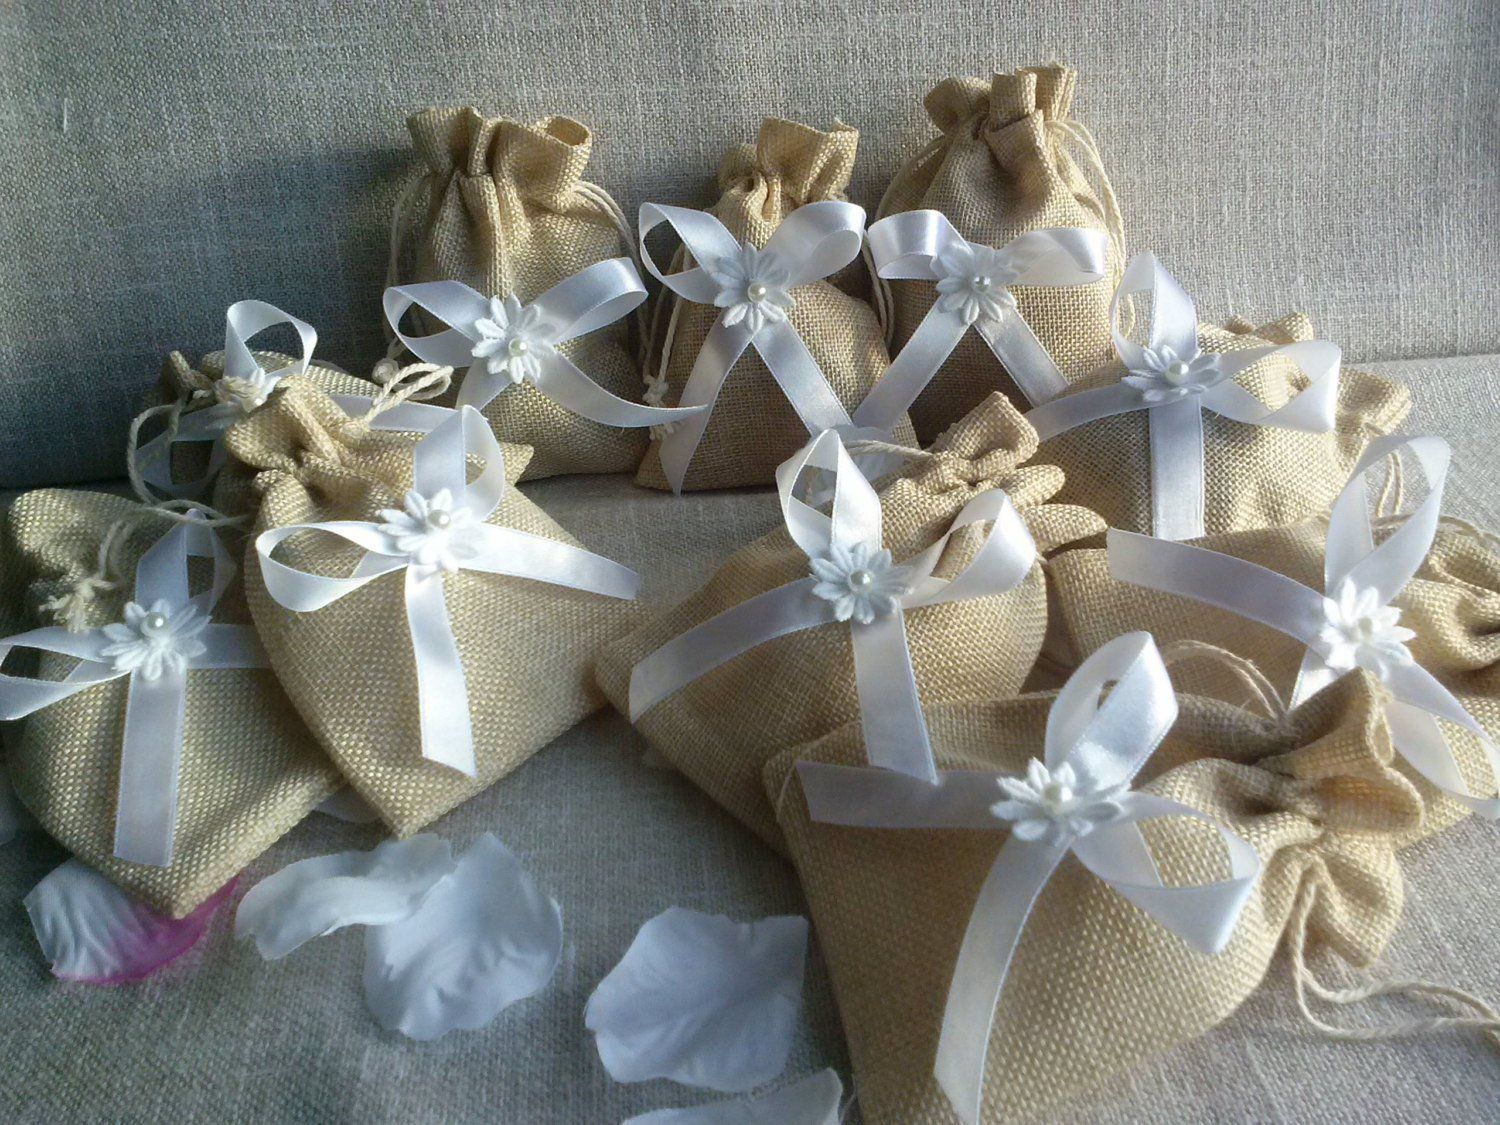 Linen Gift Bags , Natural Linen Bag, Wedding Favor Bags